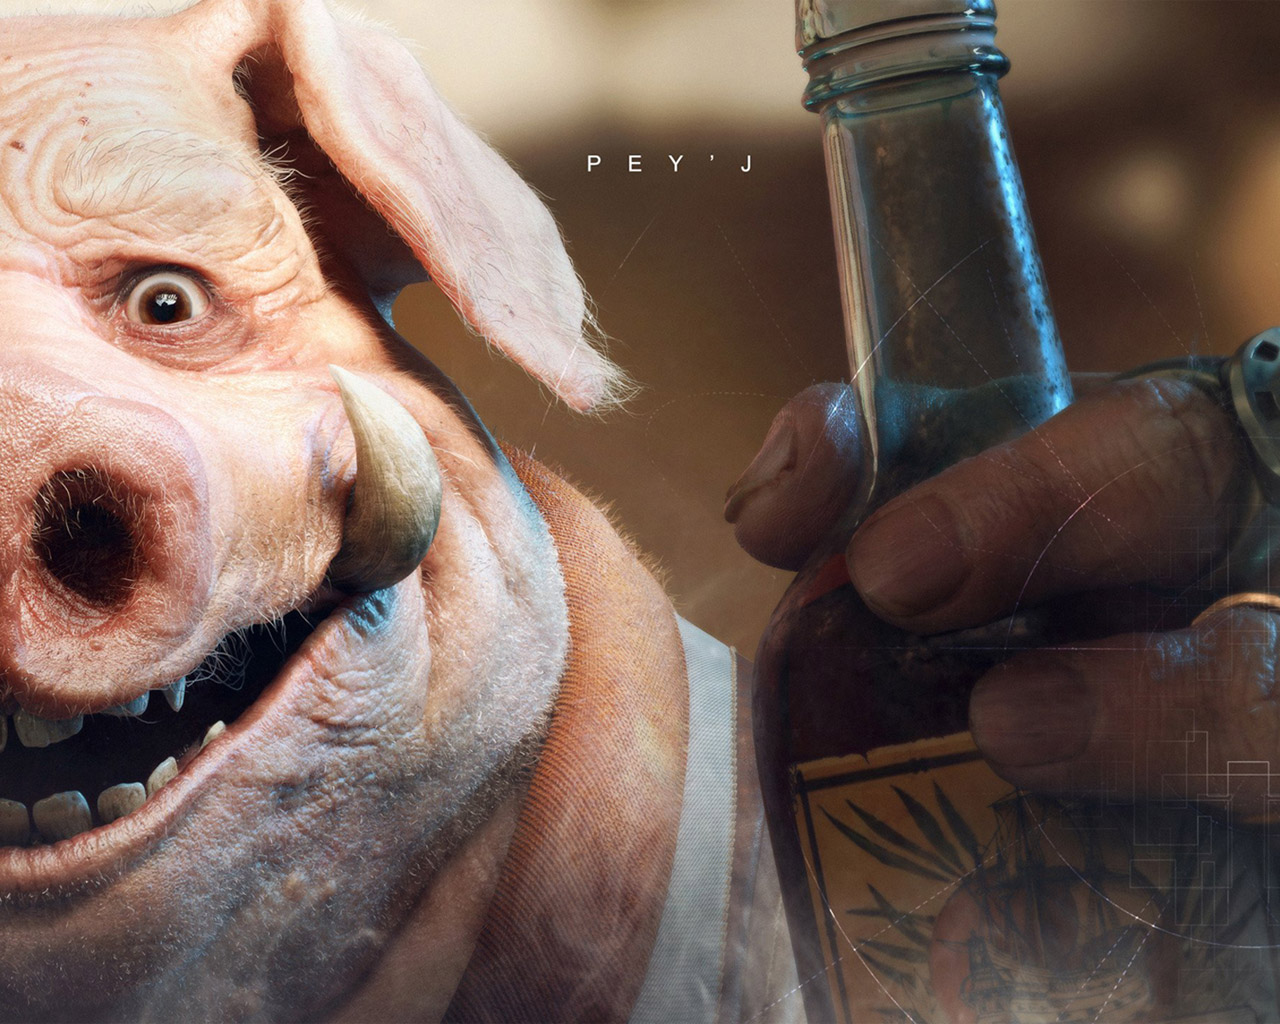 Free Beyond Good and Evil 2 Wallpaper in 1280x1024